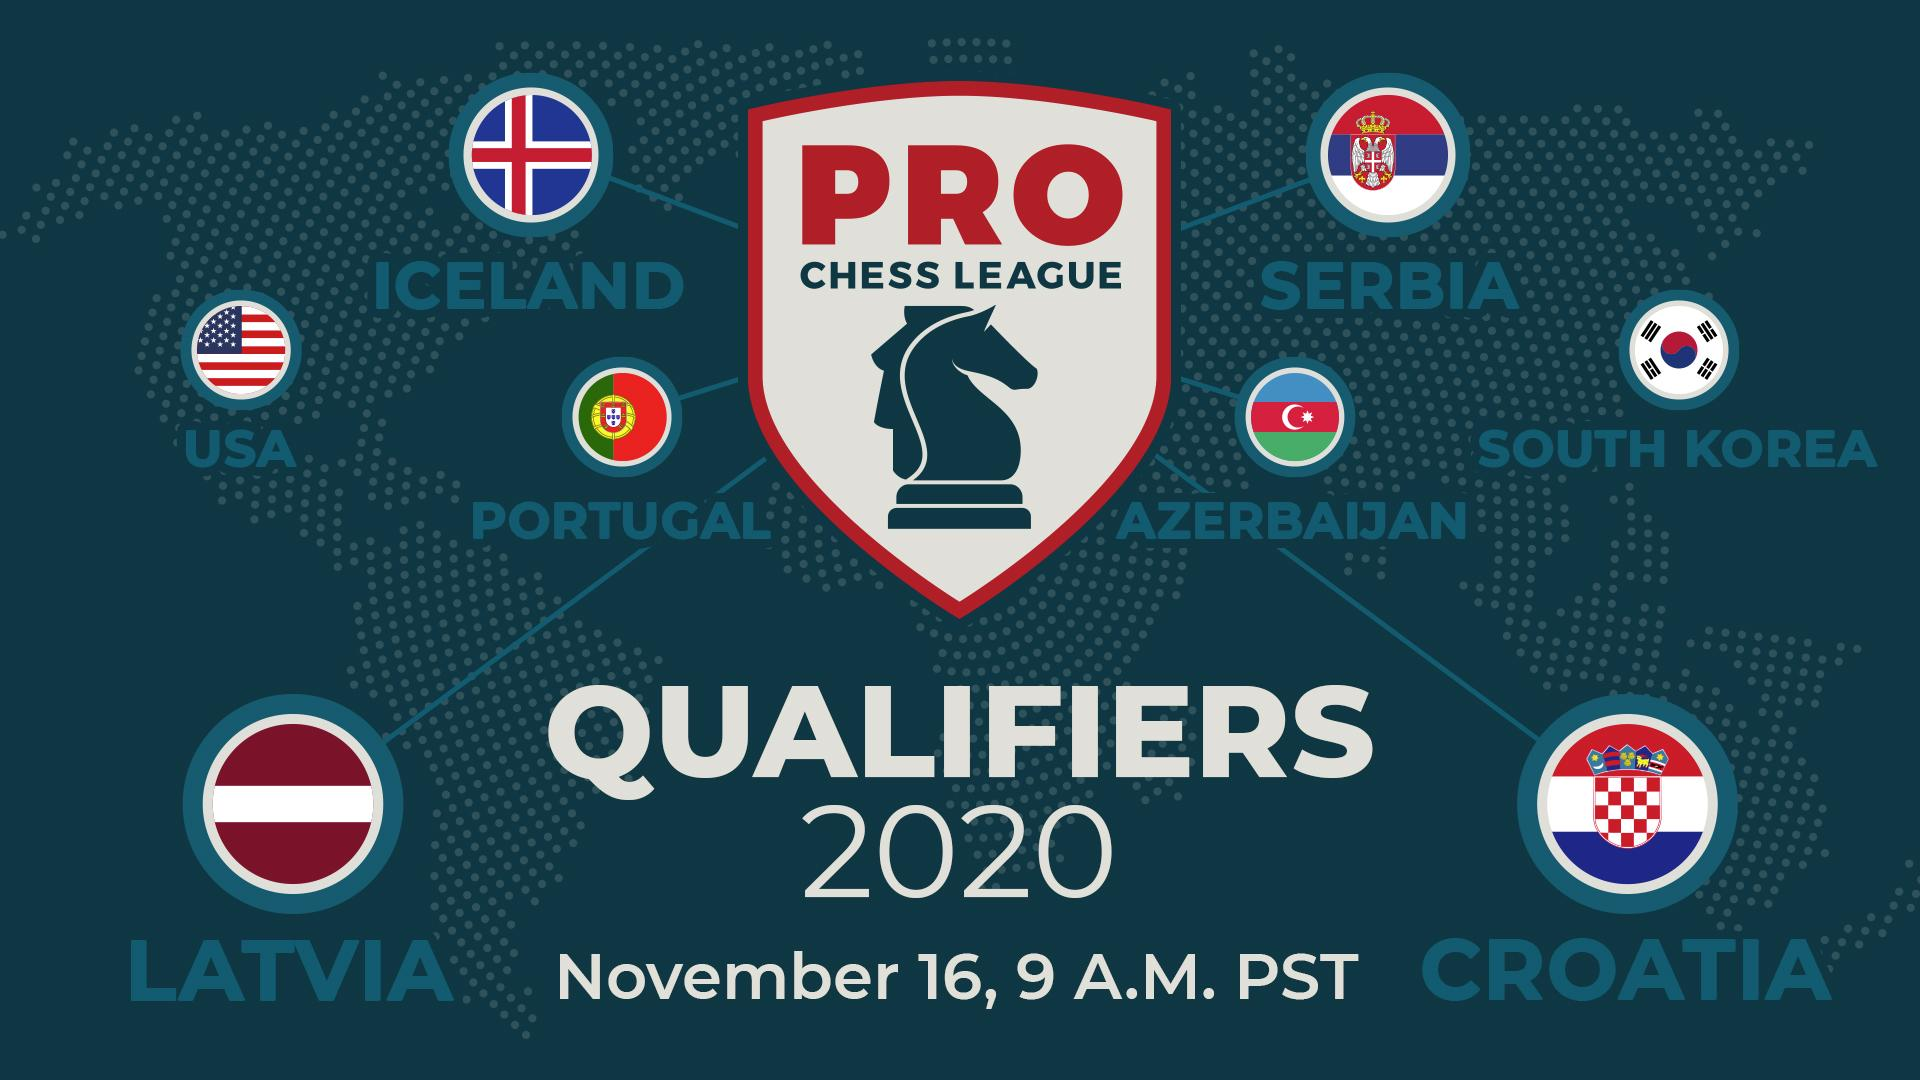 Today: 2020 PRO Chess League Qualifiers - Chess.com